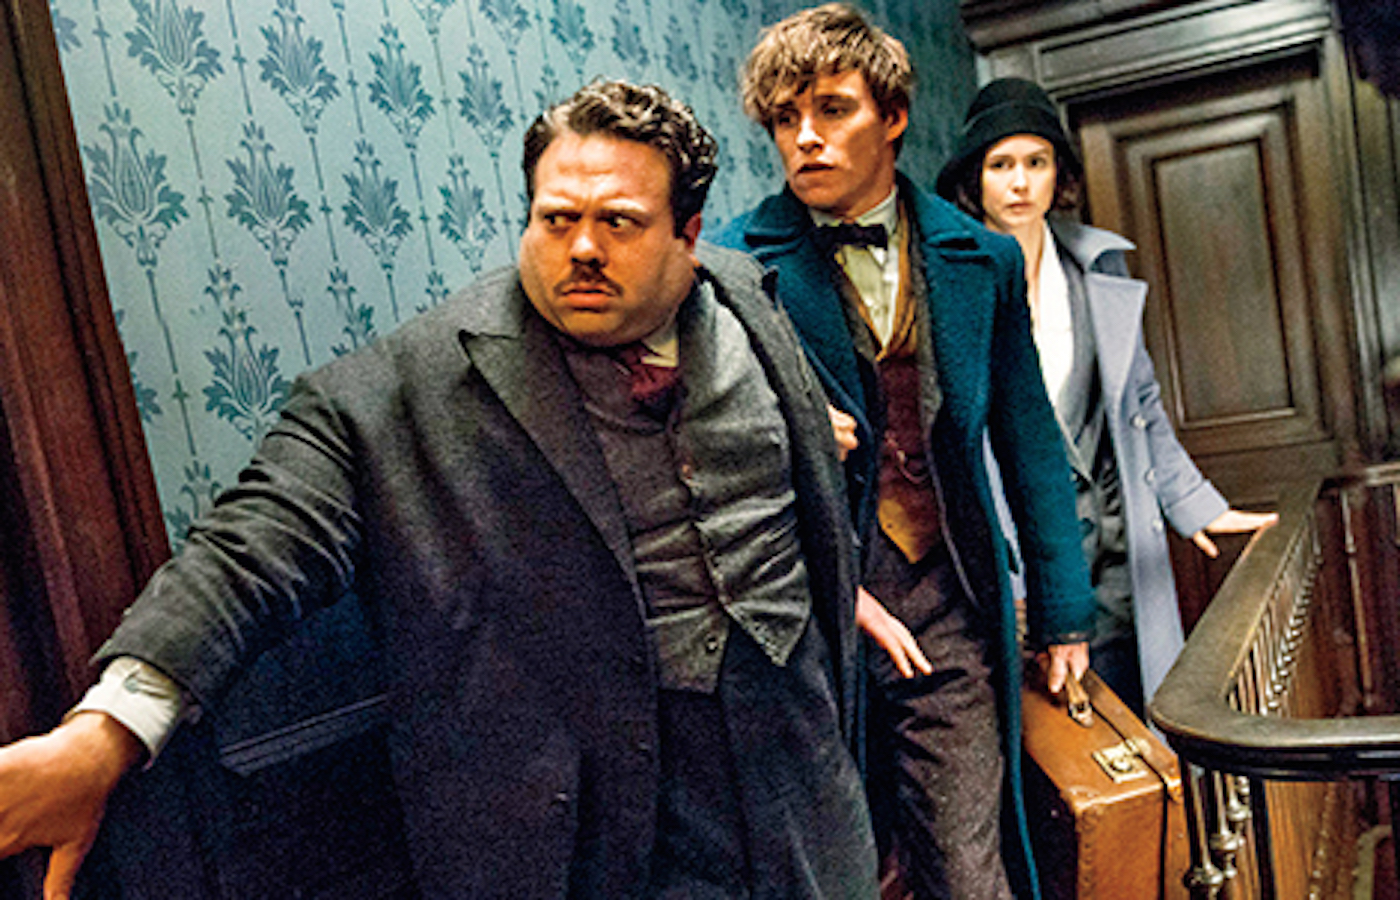 fantastic-beasts-and-where-to-find-them-dan-fogler.jpg